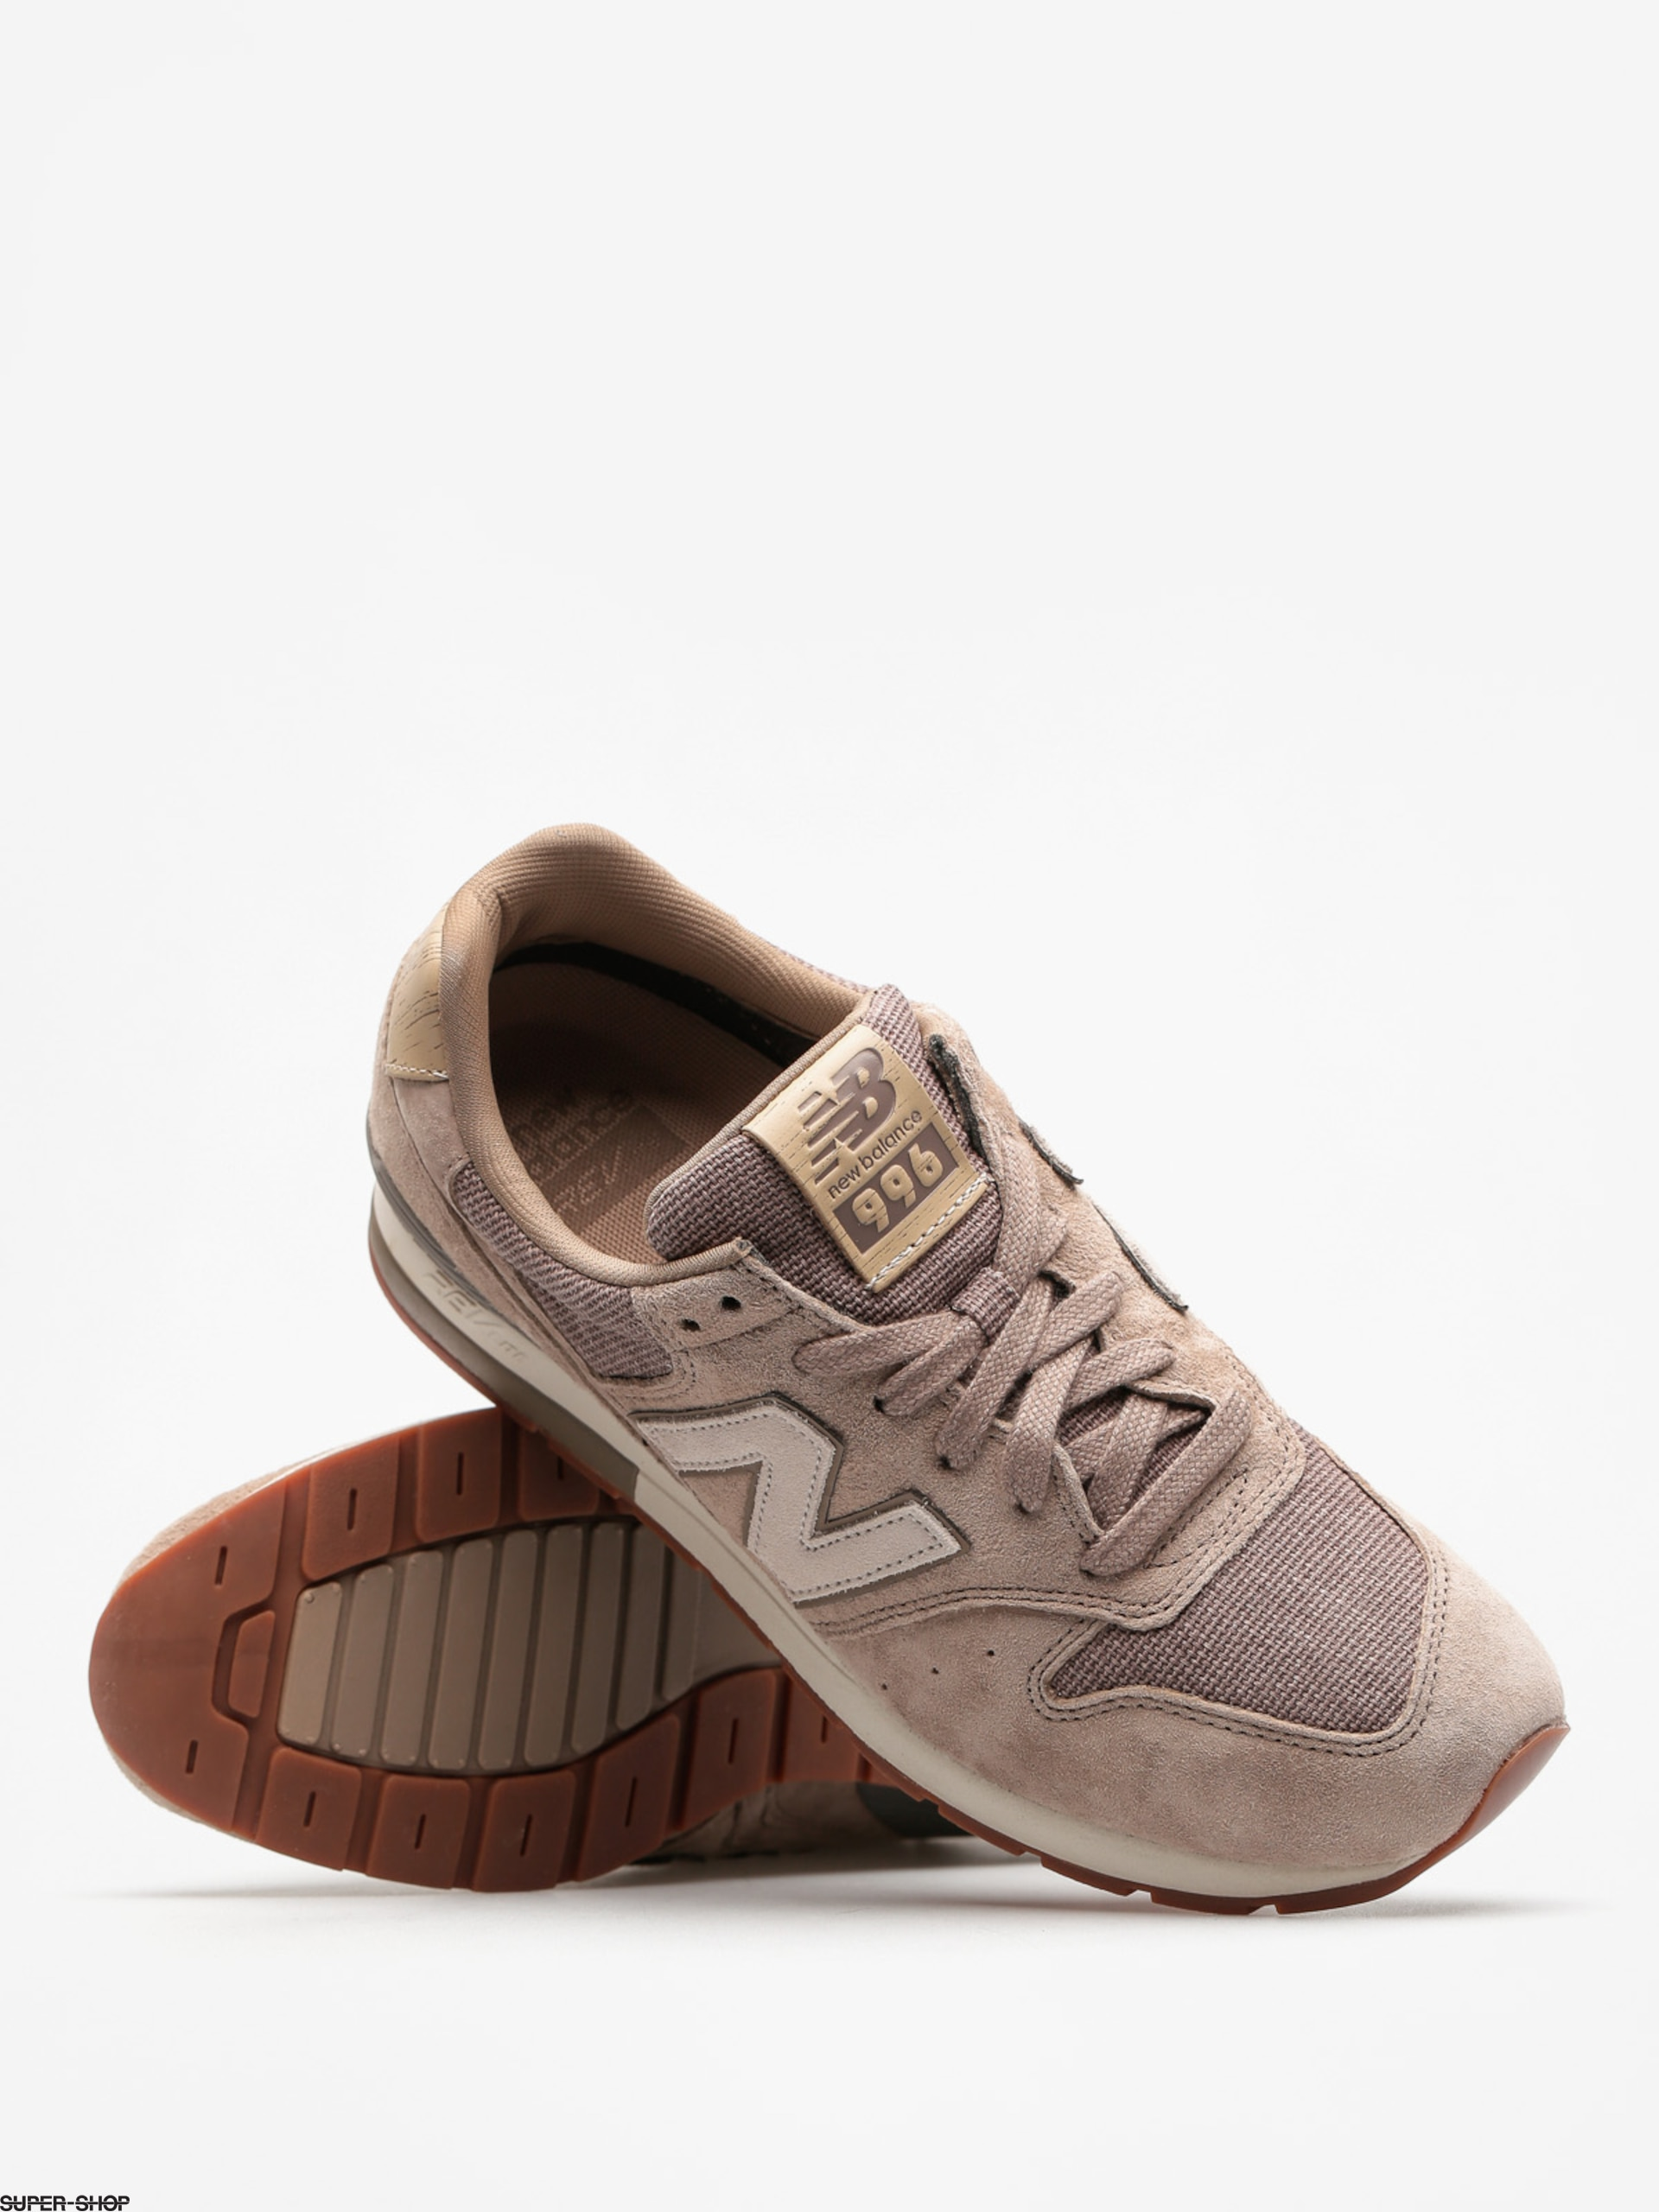 info for b0043 490a8 New Balance Shoes 996 (mushroom)